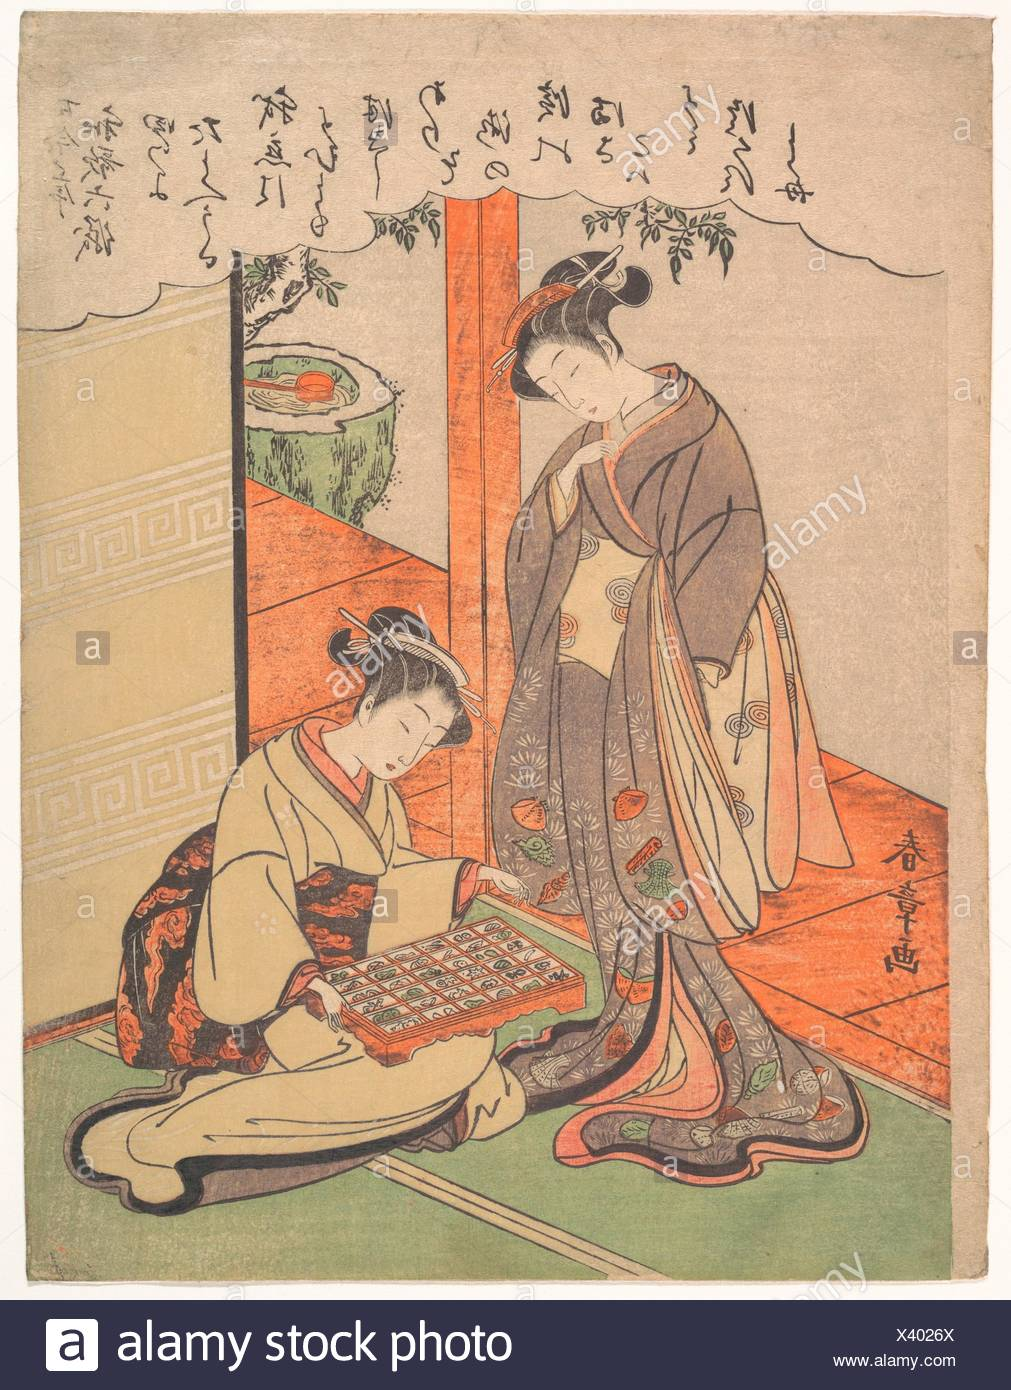 Tatohe uta/Analogy. Artist: Katsukawa Shunsho (Japanese, 1726-1792); Period: Edo period (1615-1868); Date: late 18th century; Culture: Japan; Medium: - Stock Image